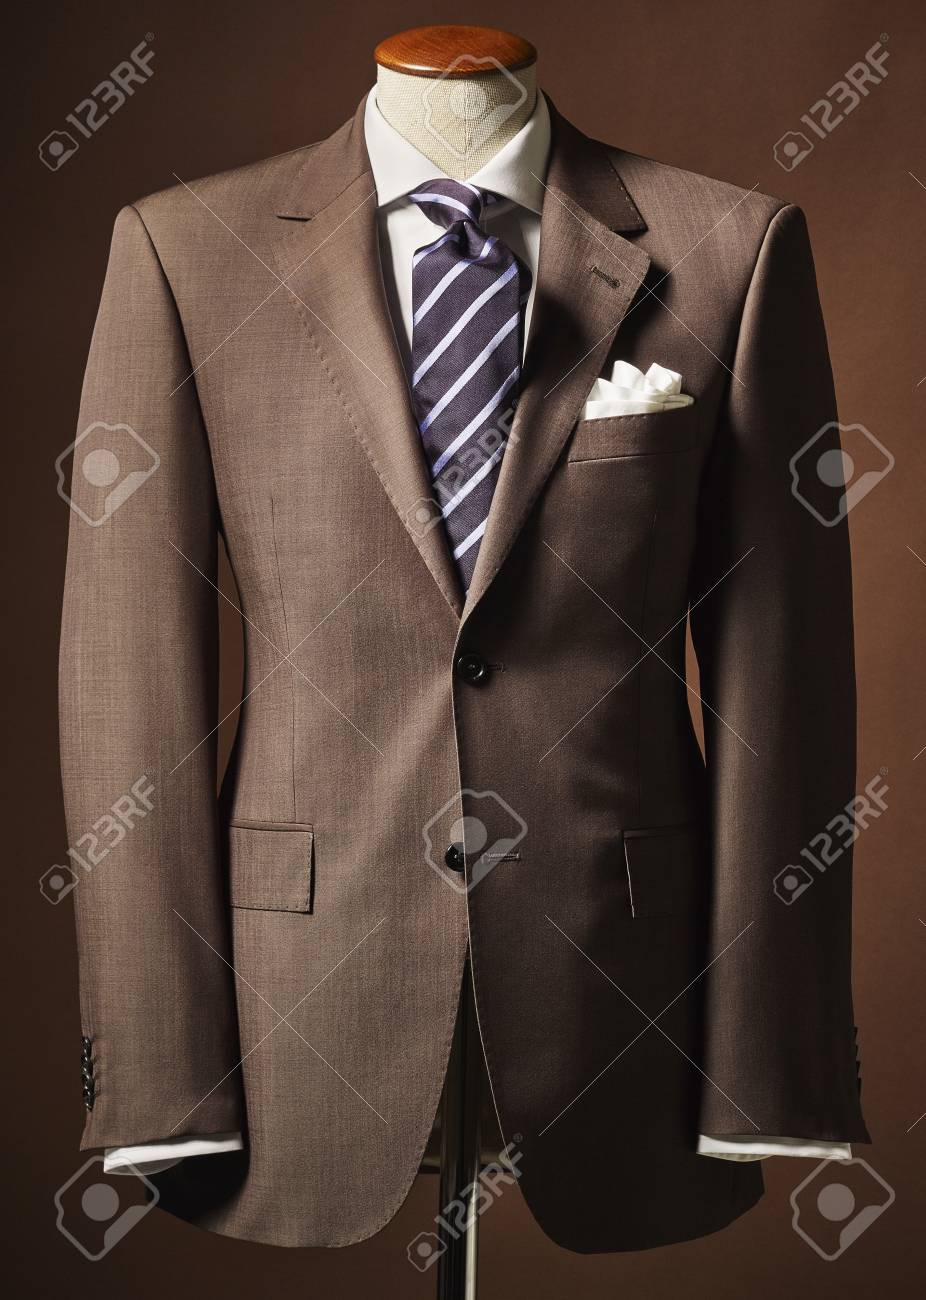 43226c669152e Brown suit jacket on bust with handkerchief and tie on brown background  Stock Photo - 87078411